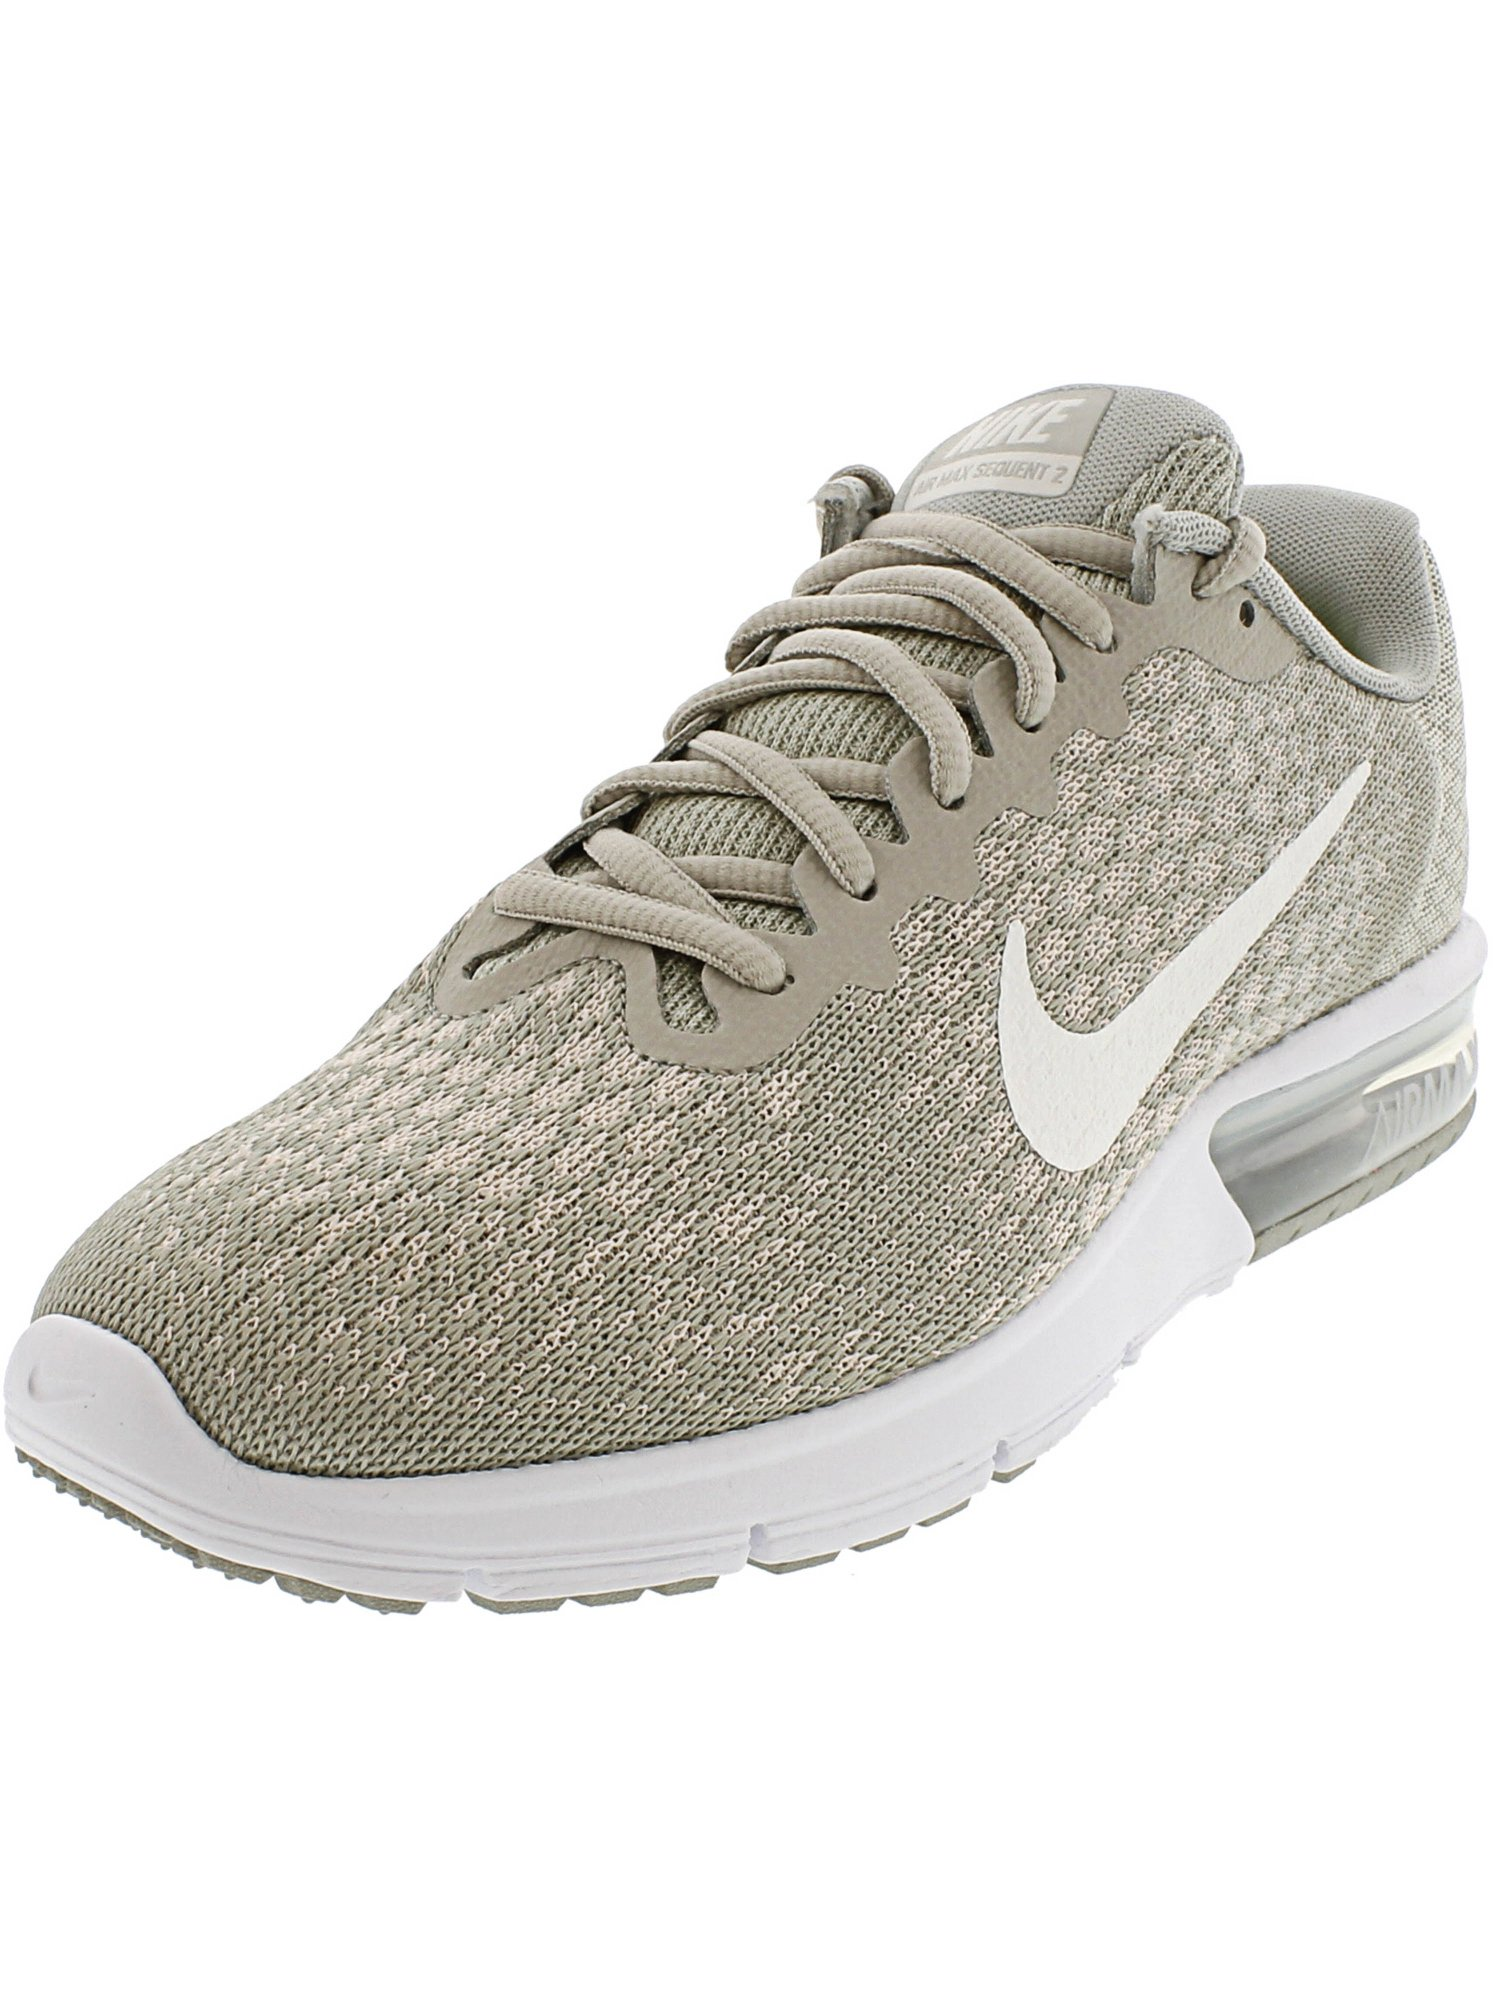 Nike-Women-039-s-Air-Max-Sequent-2-Ankle-High-Running-Shoe thumbnail 11